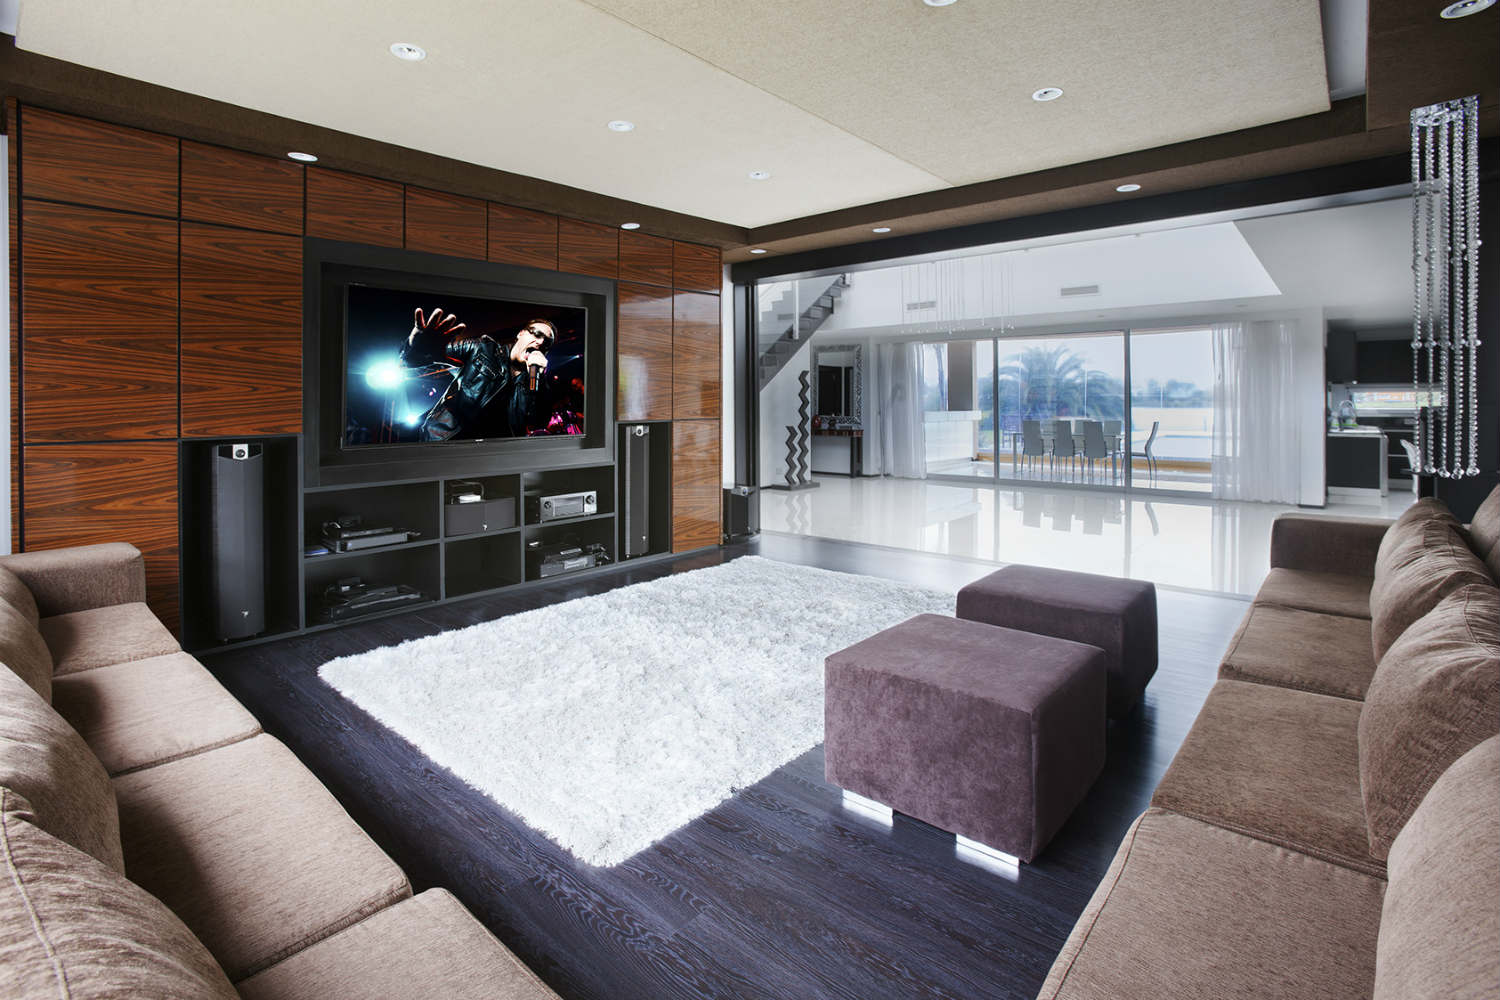 Casa Fontela in Buenos Aires, Argentina designed by WSDG. Home Theater at daylight